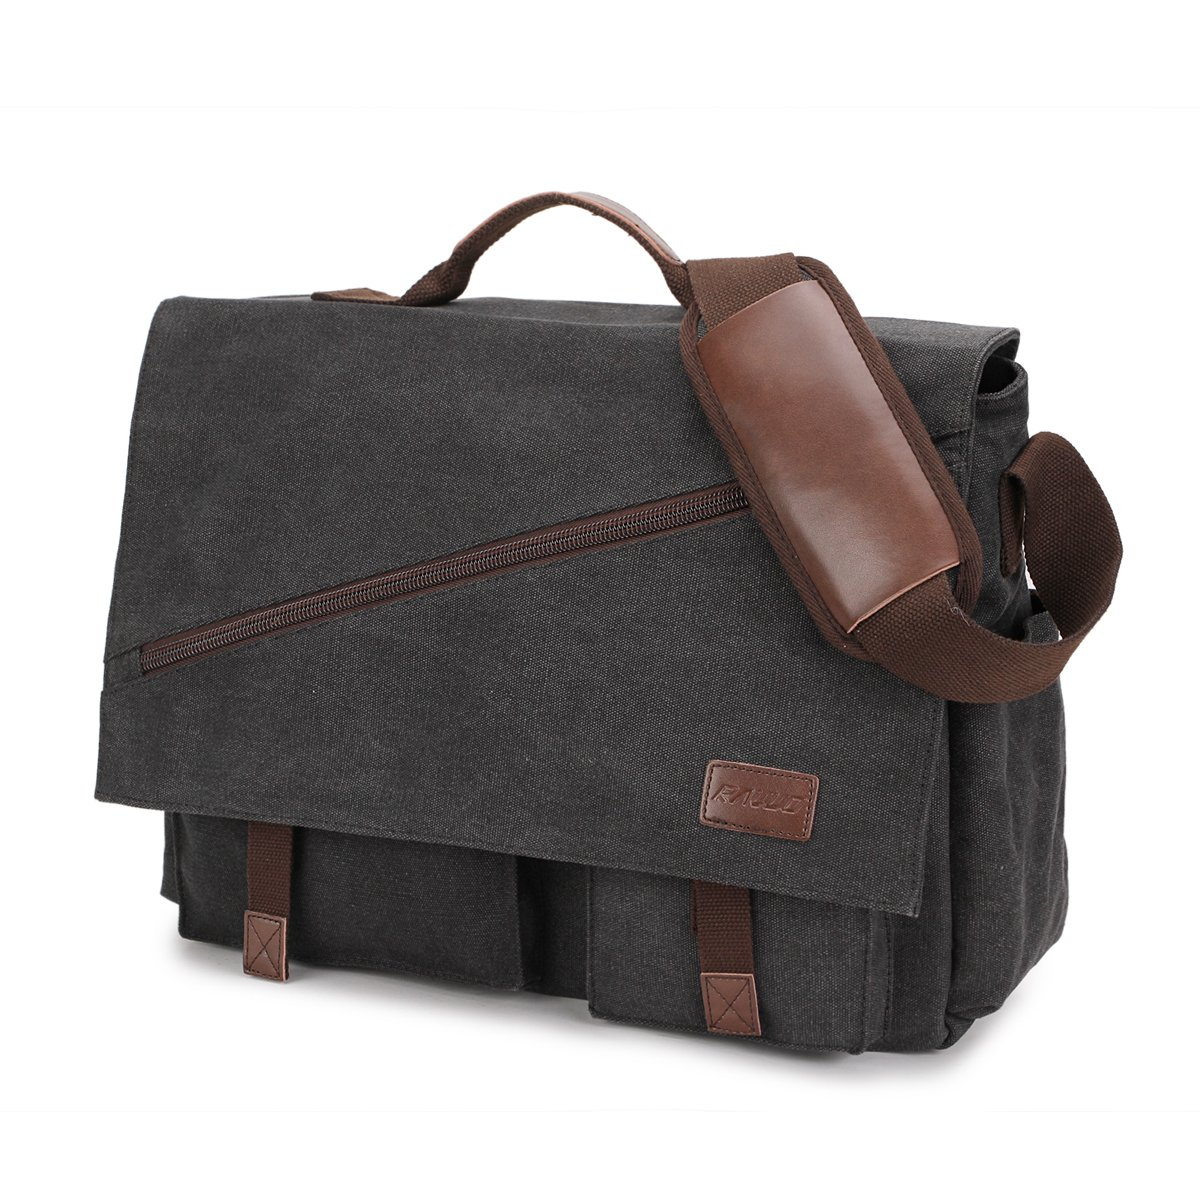 5d63f2e0a461 Kaukko Bags - Messenger Bag for Men